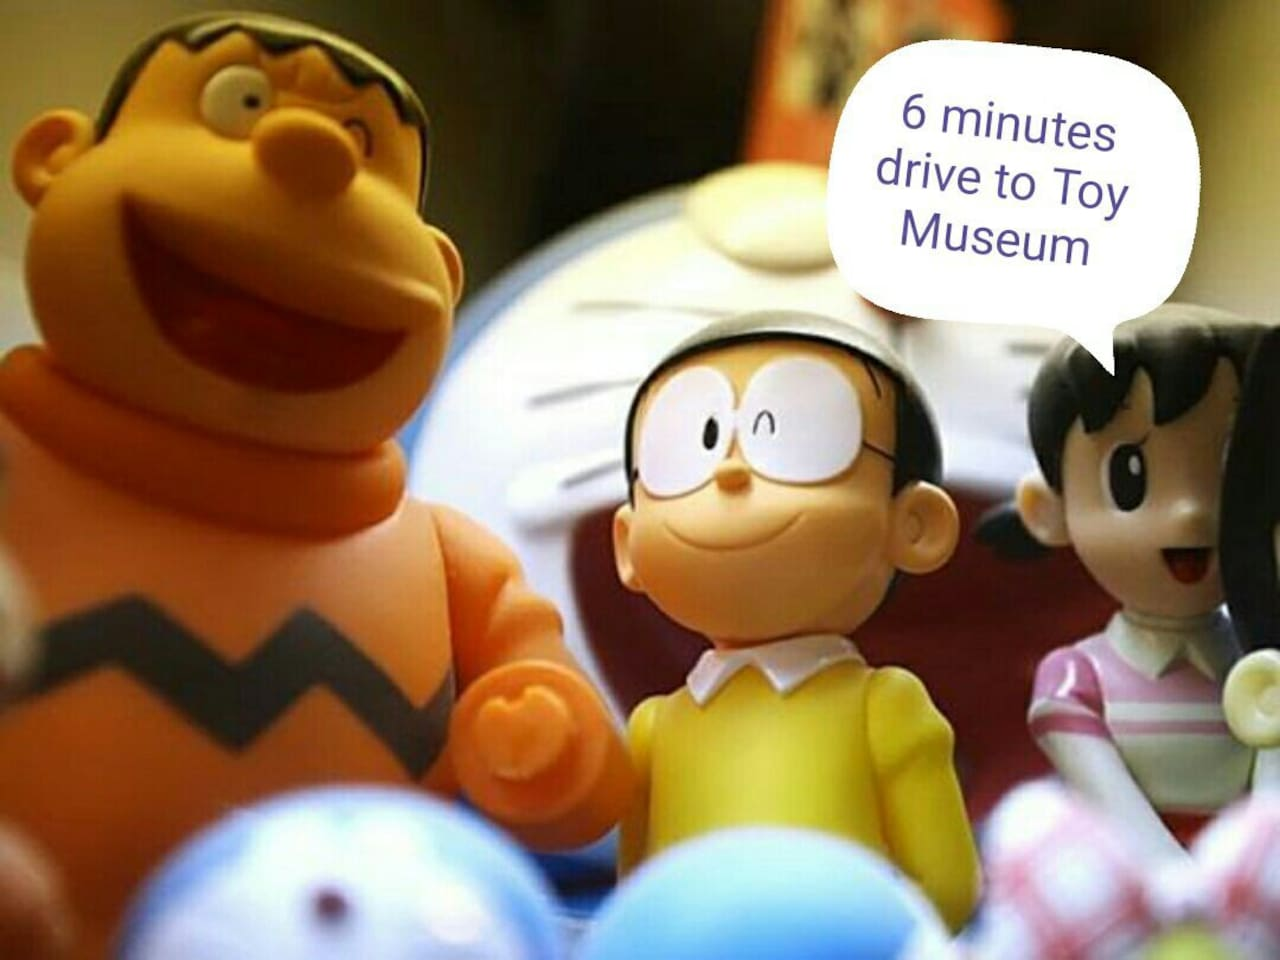 6 minutes drive to Toy Museum